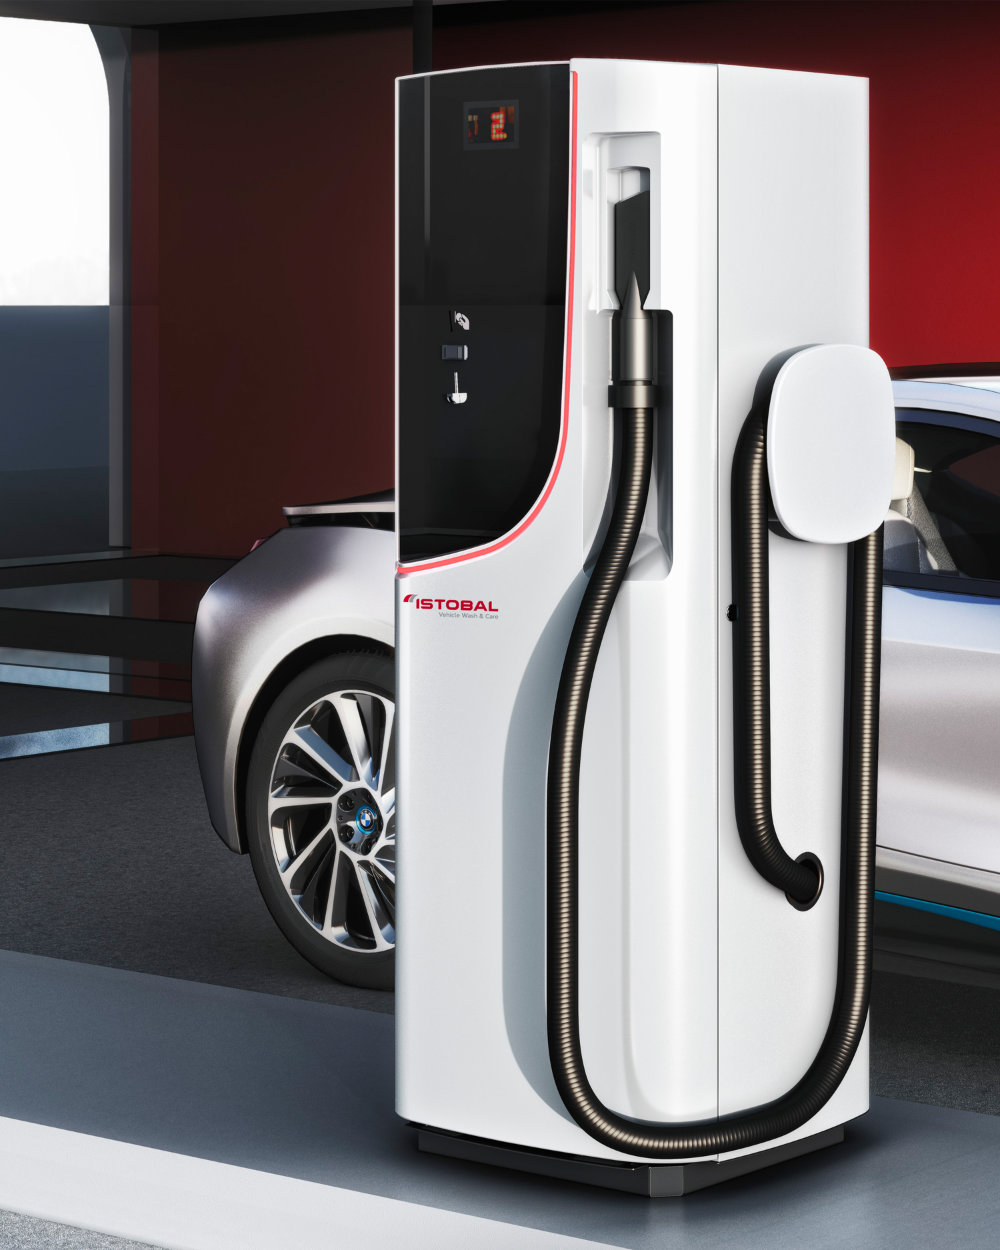 Alegre Design defines Istobal's new vehicle vaccuming systems